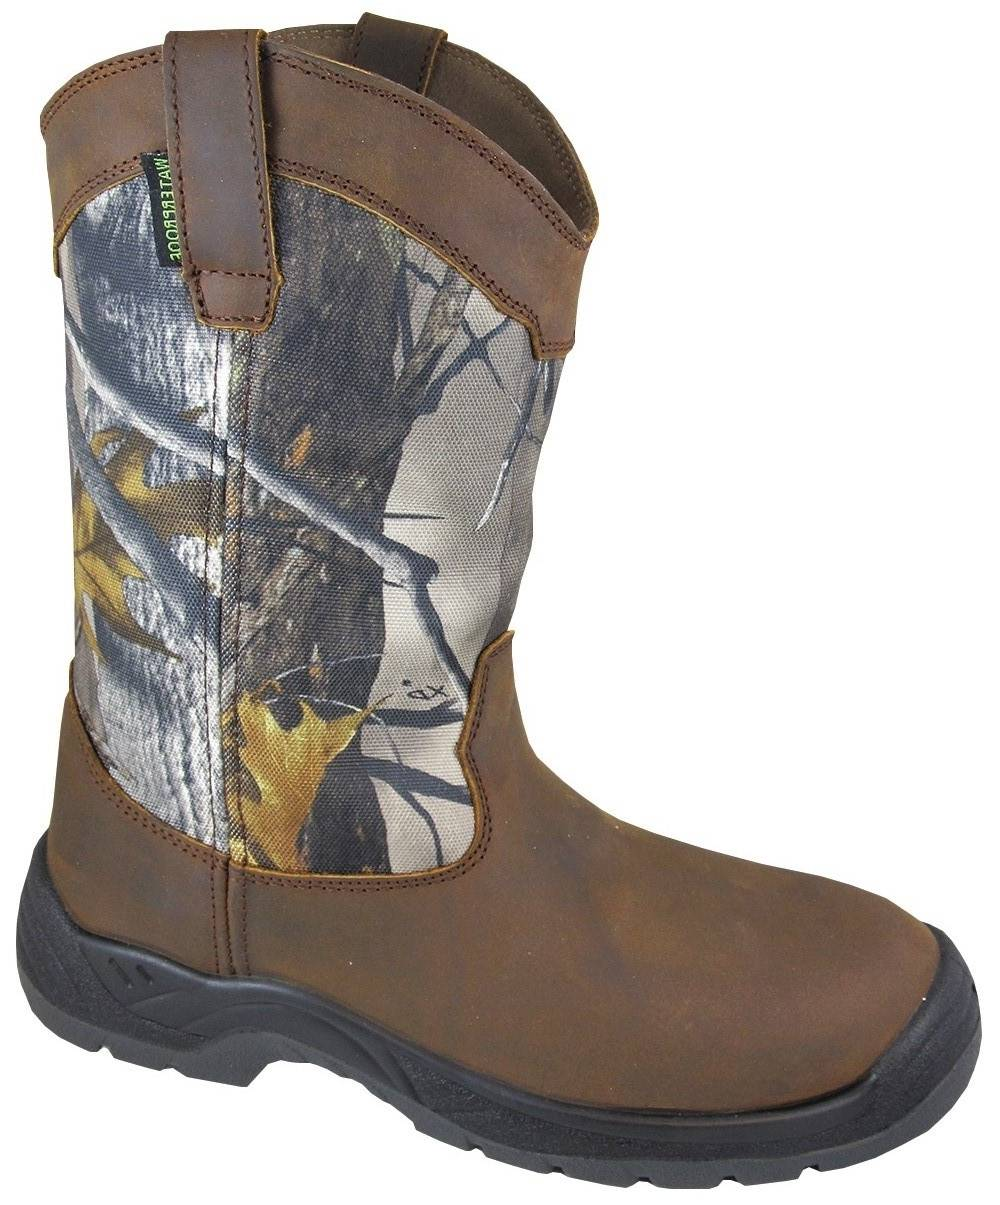 Smoky Mountain Men's BRUSHFIELD Waterproof Steele Toe Boot